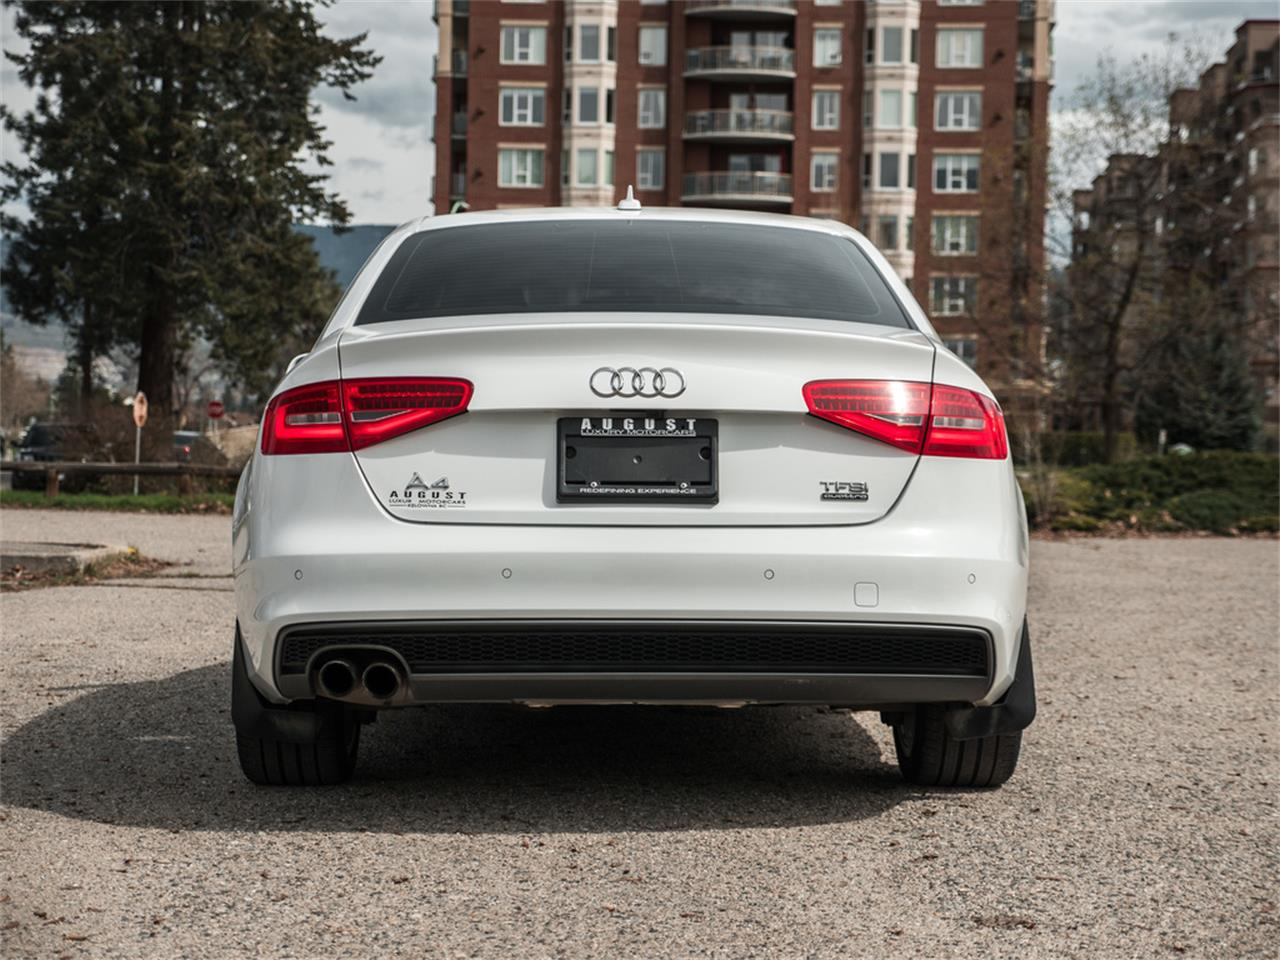 Large Picture of '16 Audi A4 located in British Columbia - $25,245.00 Offered by August Motorcars - Q9PX